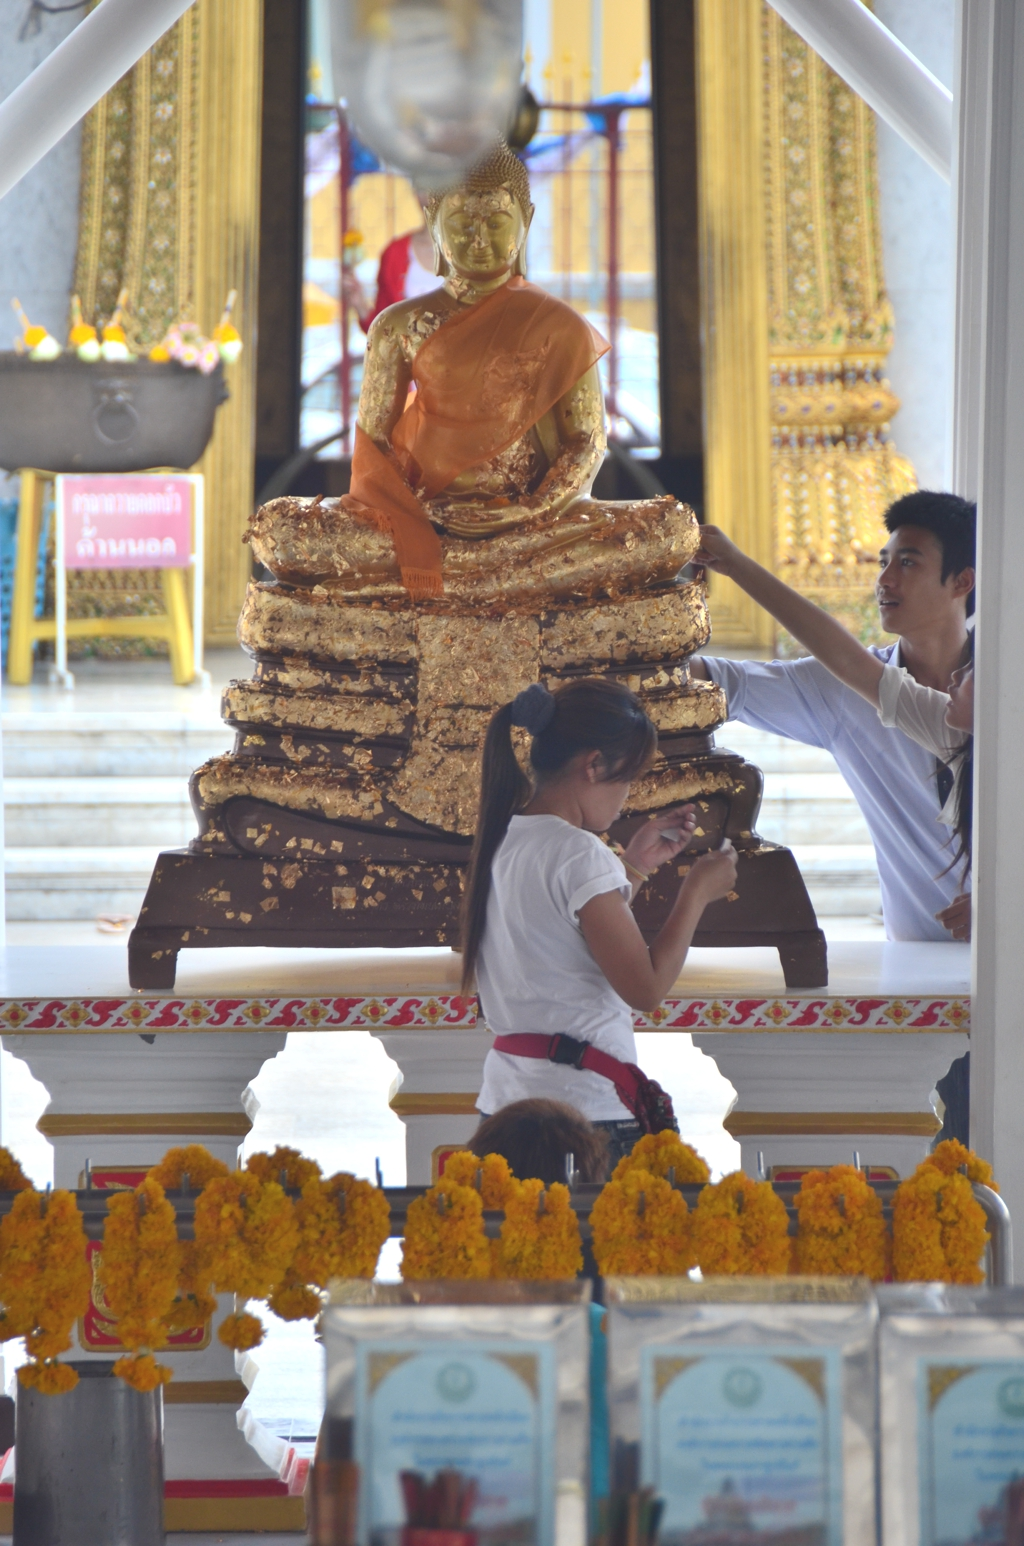 As is the case with many Buddhas in Southeast, the one at Wat Kalayanamitr is pretty with gold leaf by the faithful